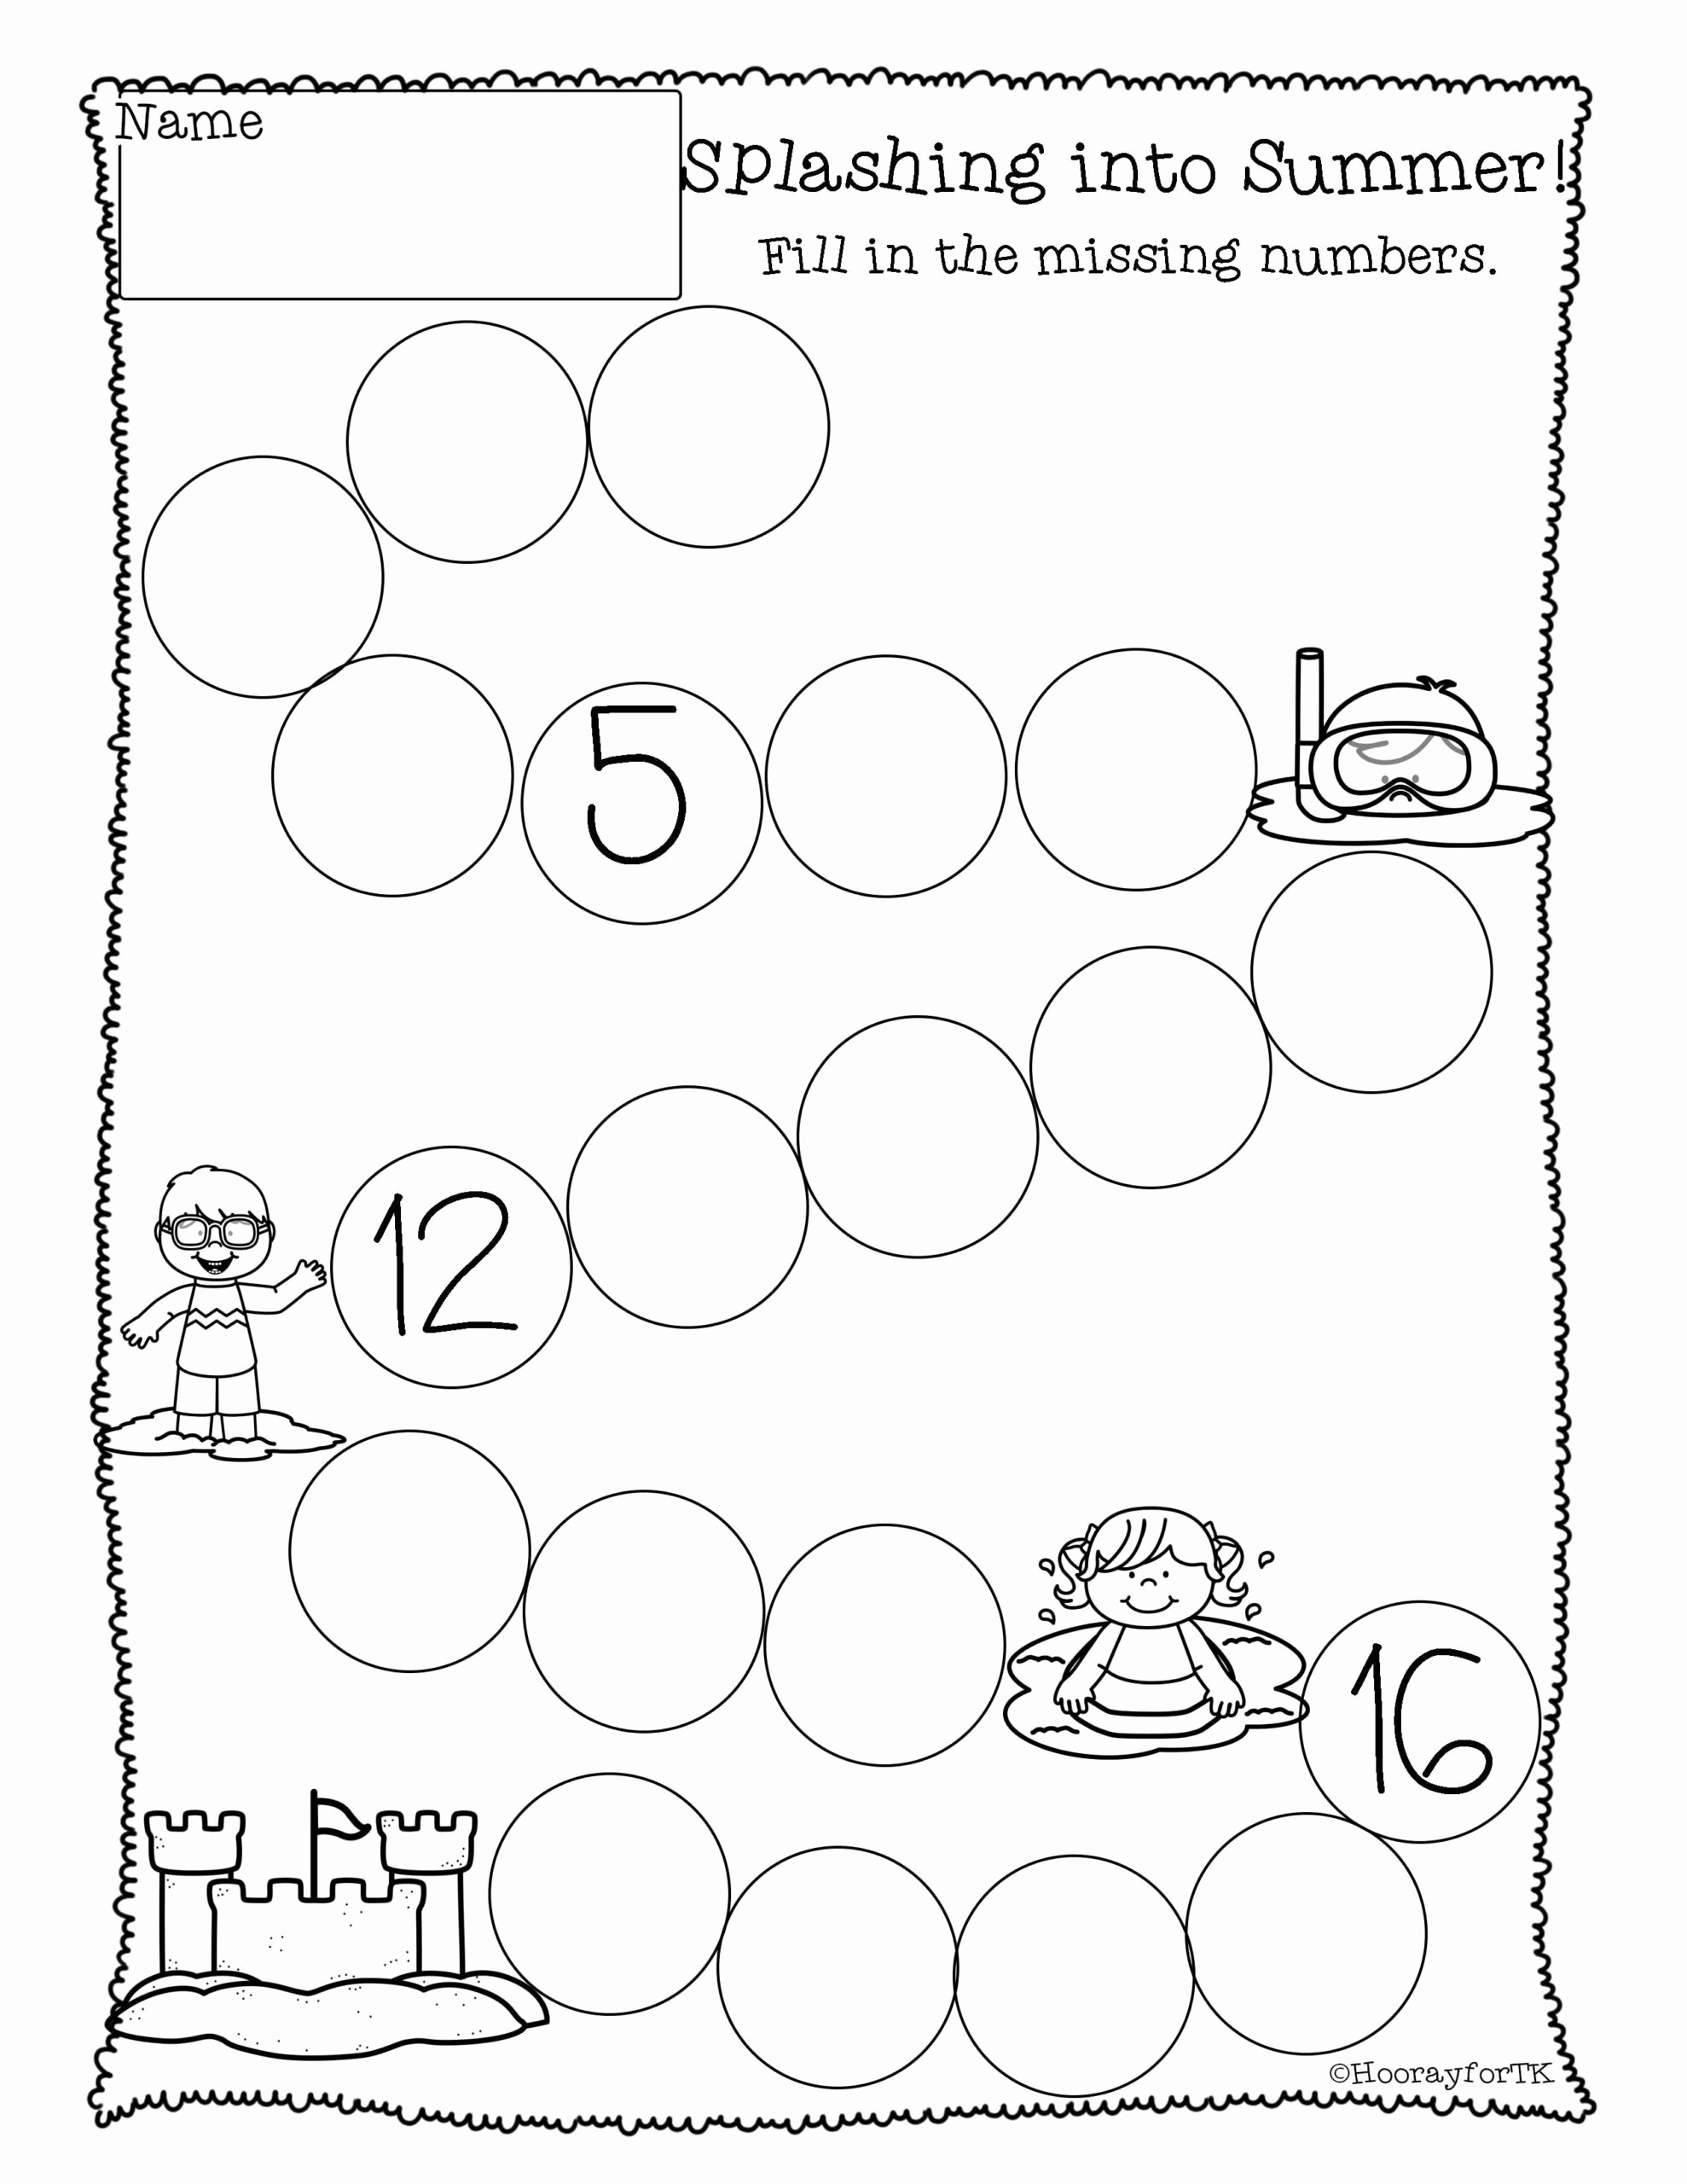 Mathematics Worksheets for Preschoolers Fresh Worksheets Math Activities for Kindergarten Worksheets